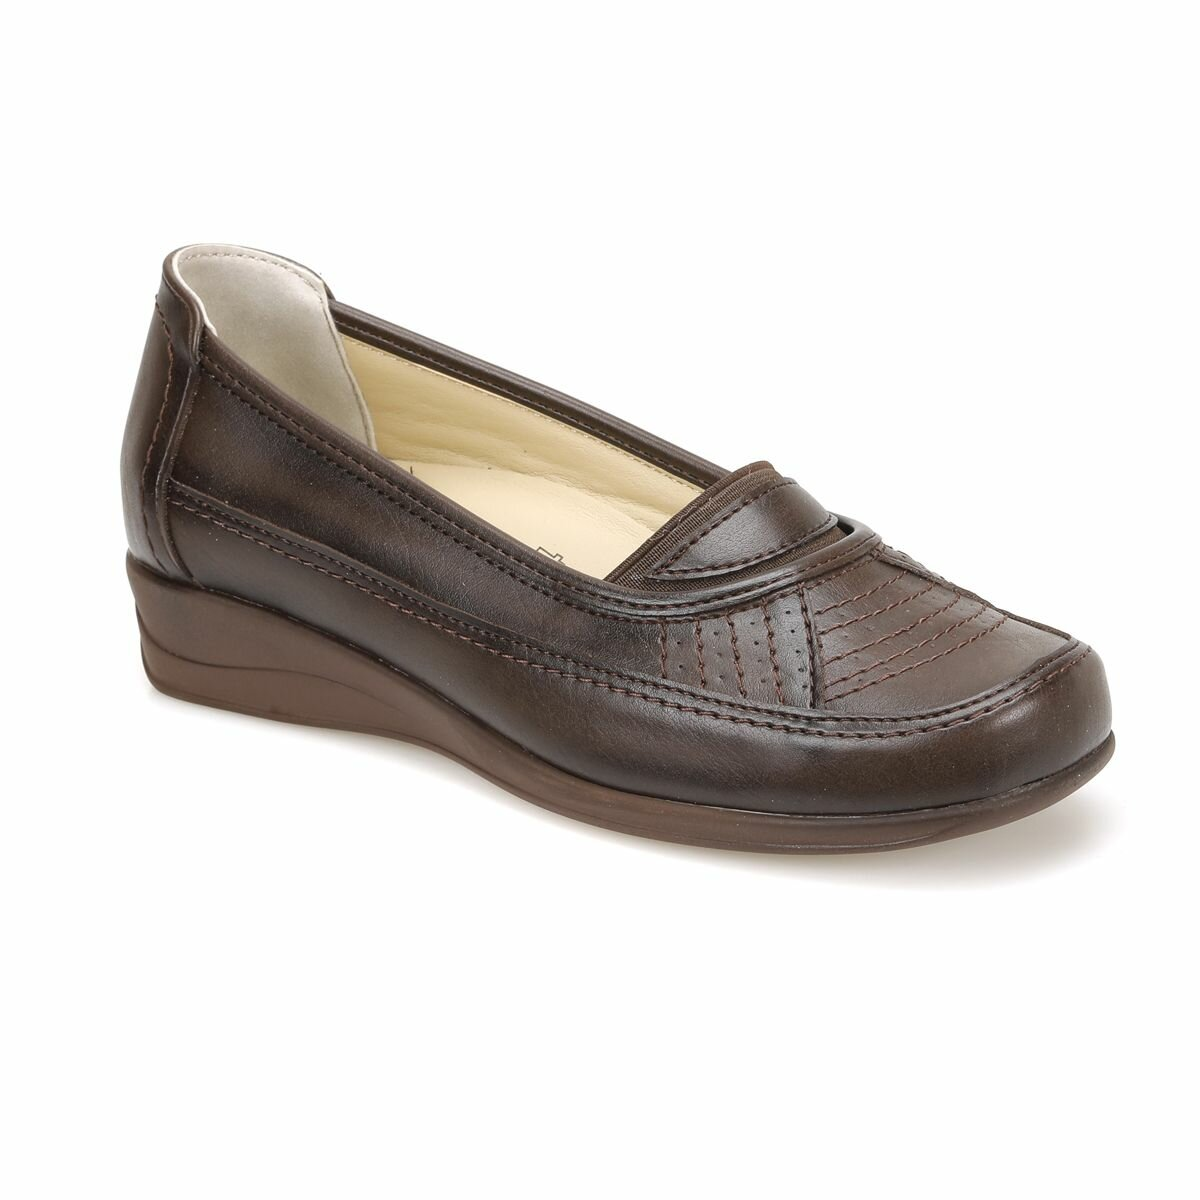 FLO 81.109609.Z Brown Women 'S Classic Shoes Polaris 5 Point